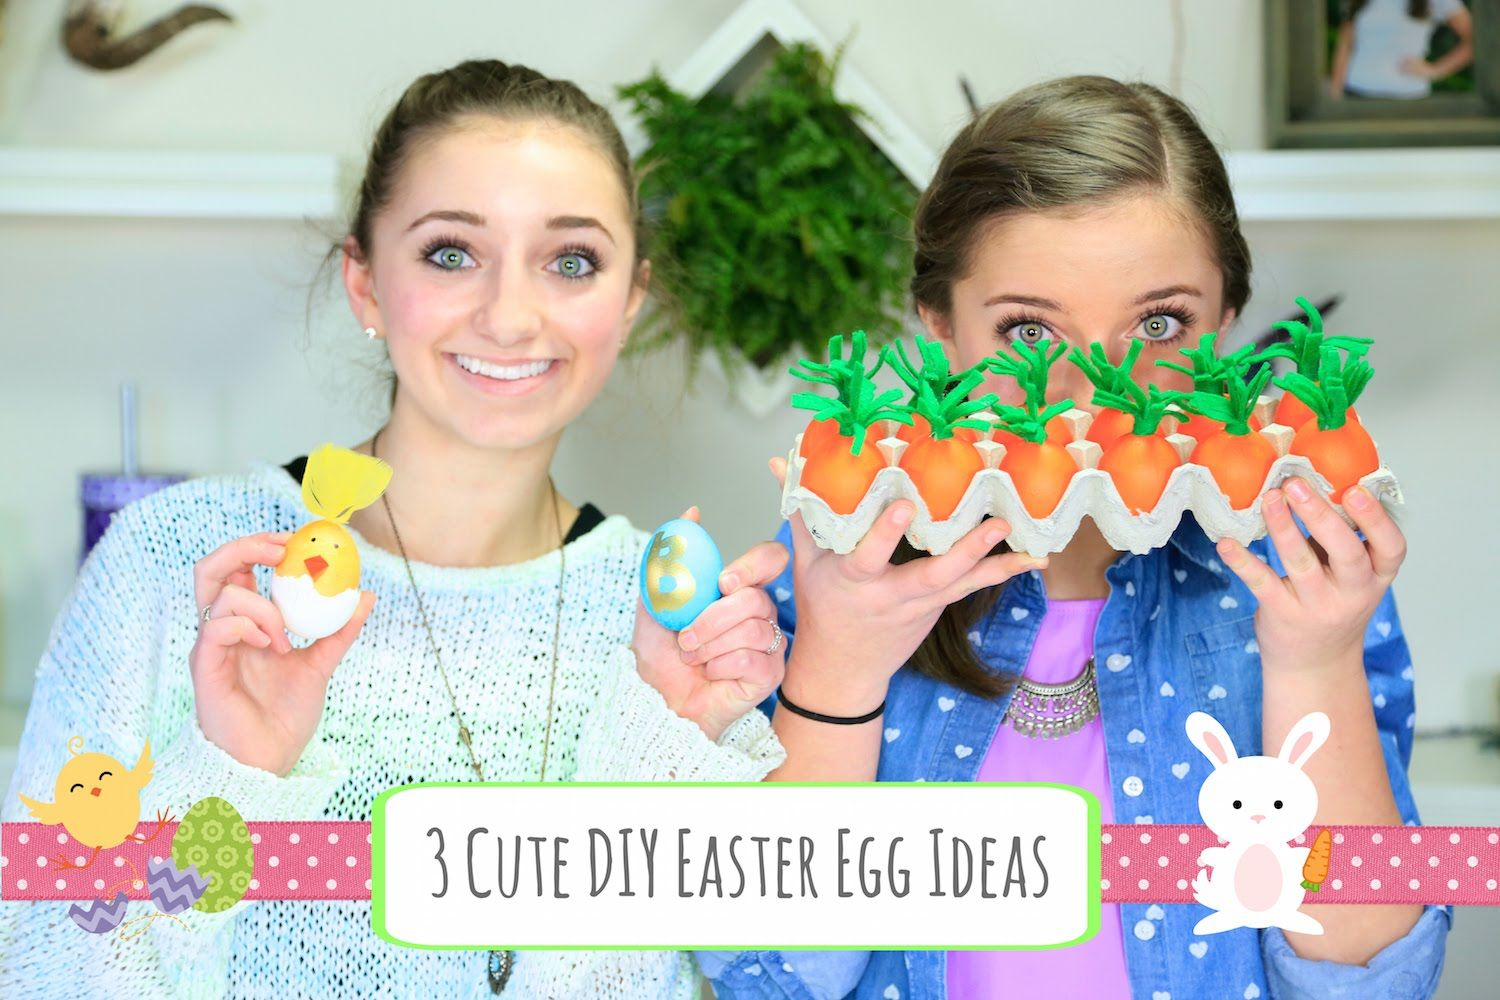 3 cute diy easter egg ideas brooklyn and bailey h 3 cute diy easter egg ideas brooklyn and bailey negle Images